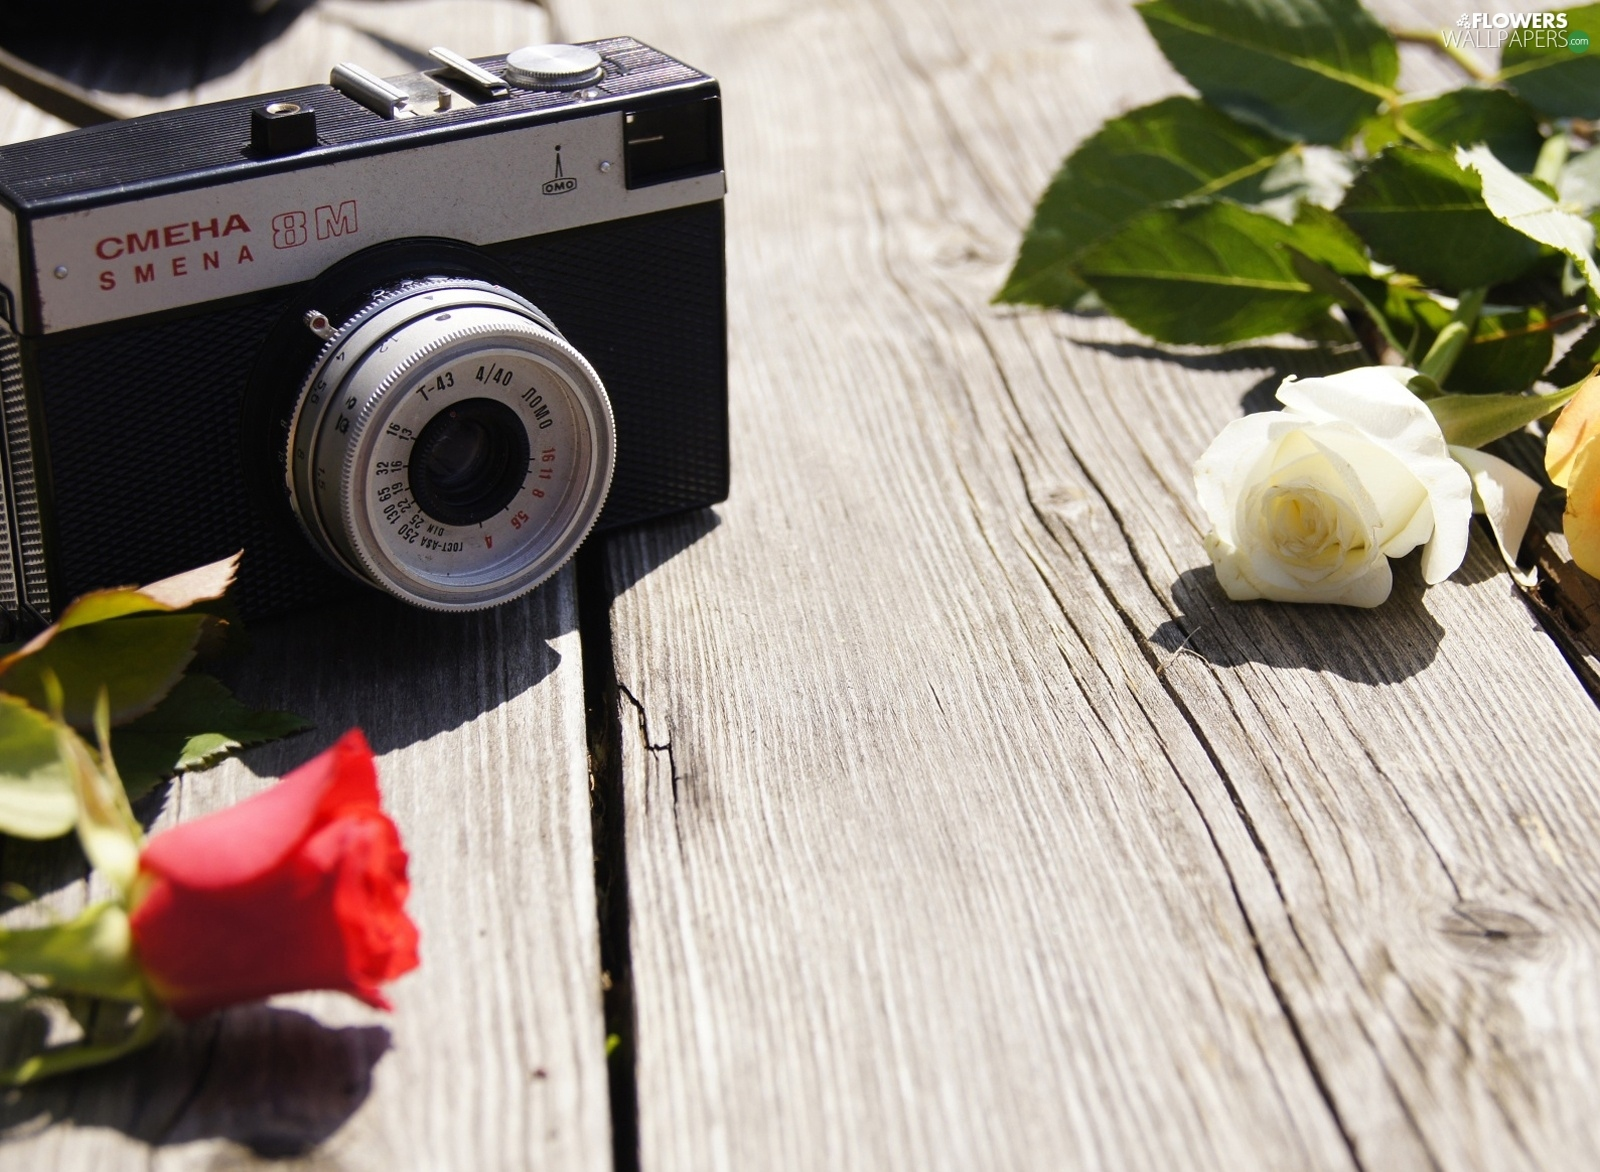 roses, Camera, photographic